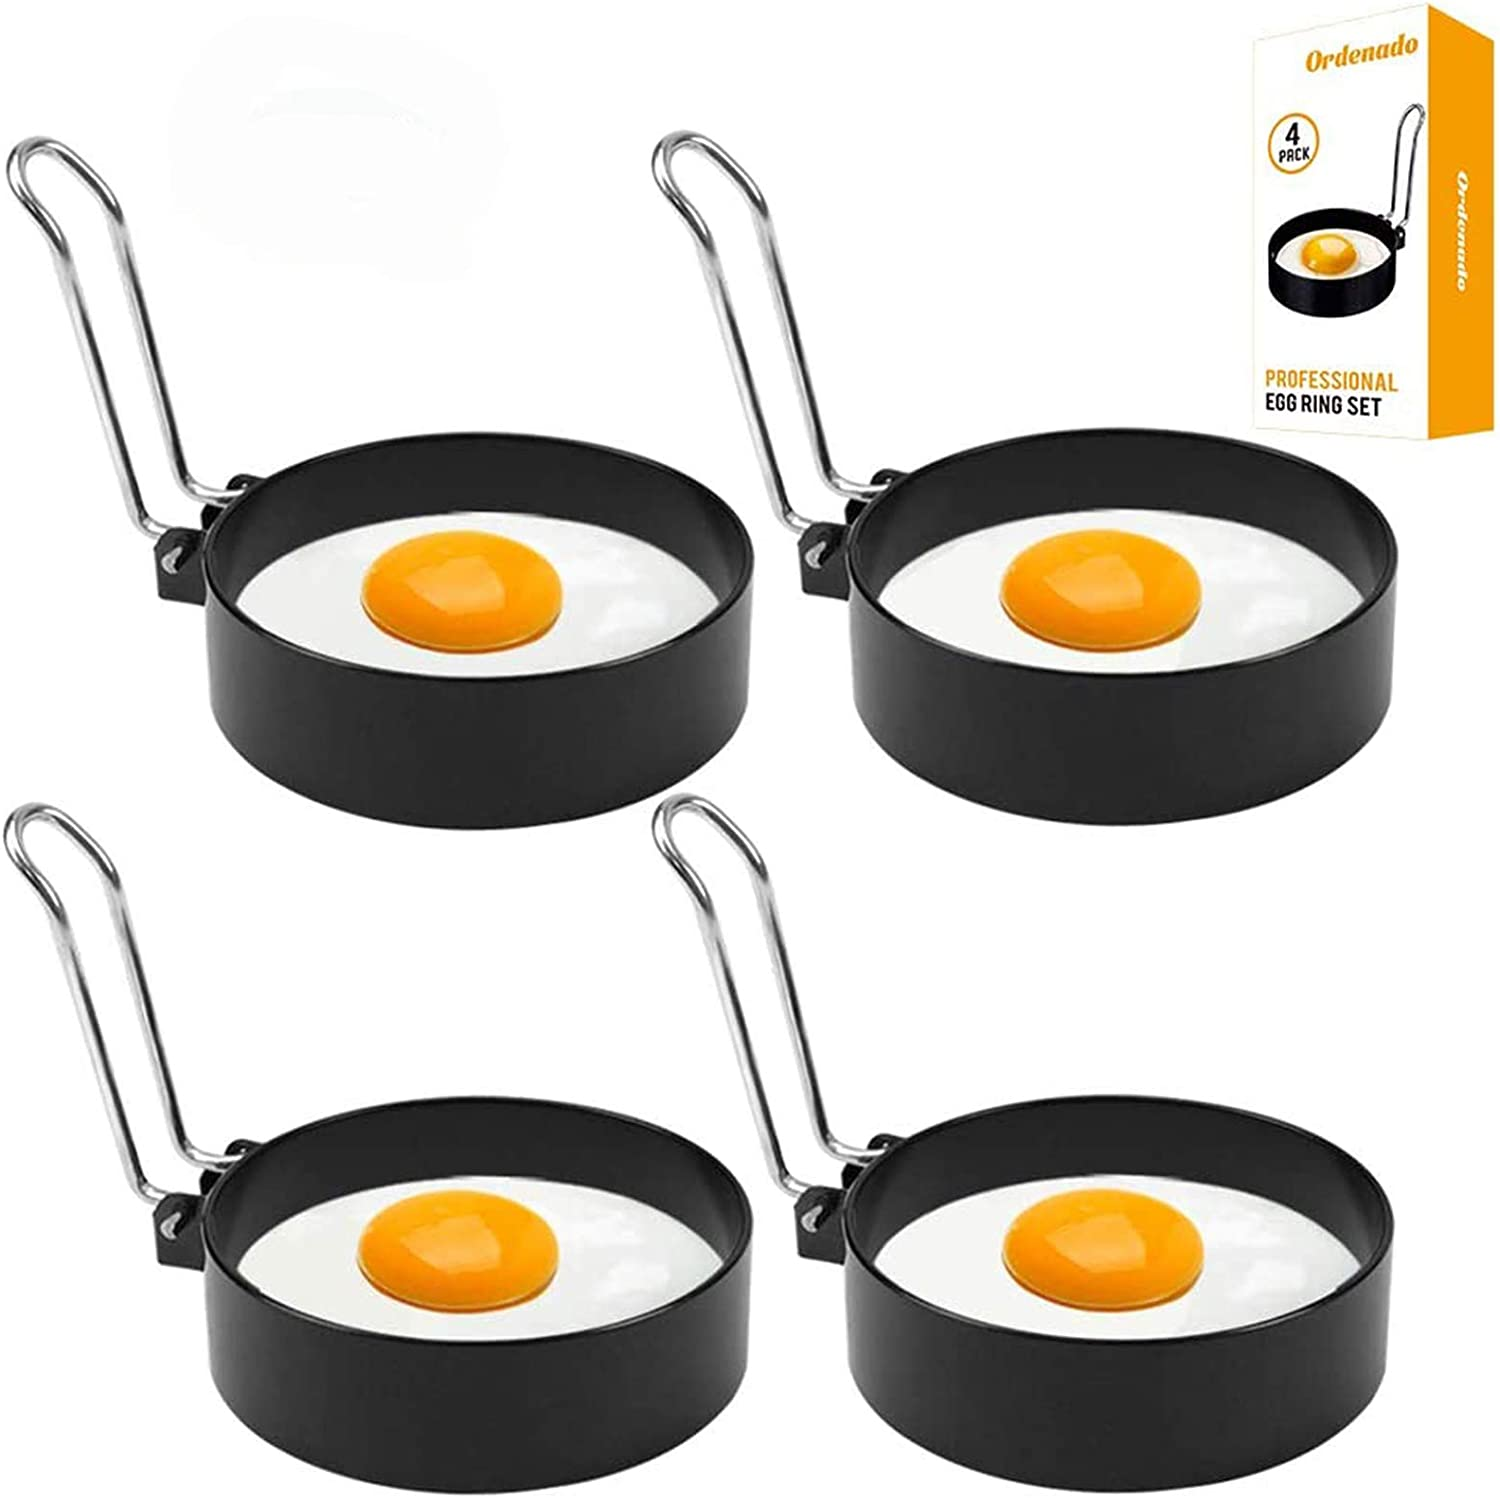 Egg Rings Mold for Cooking, Stainless Steel Round Egg Cooker Ring Nonstick Fried Egg Maker Molds Shaper Breakfast Household Kitchen Eggs Tool for perfect pancake, Sandwich, McMuffin (4 Pack)